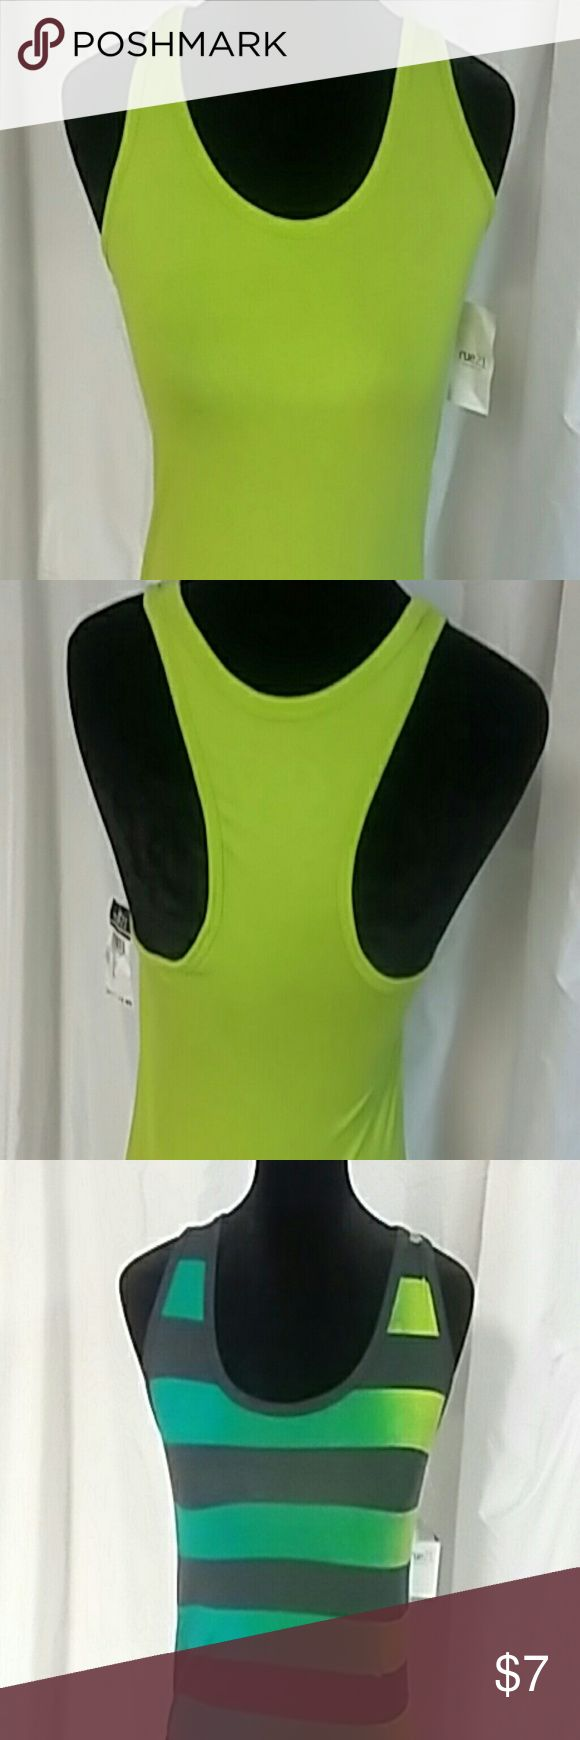 *BUNDLE* of 3 NWT razor back t shirts Lime green  razor back t shirt / navy striped razor back t shirt and gray razor back all 3 NWT Rue 21 Tops Tank Tops